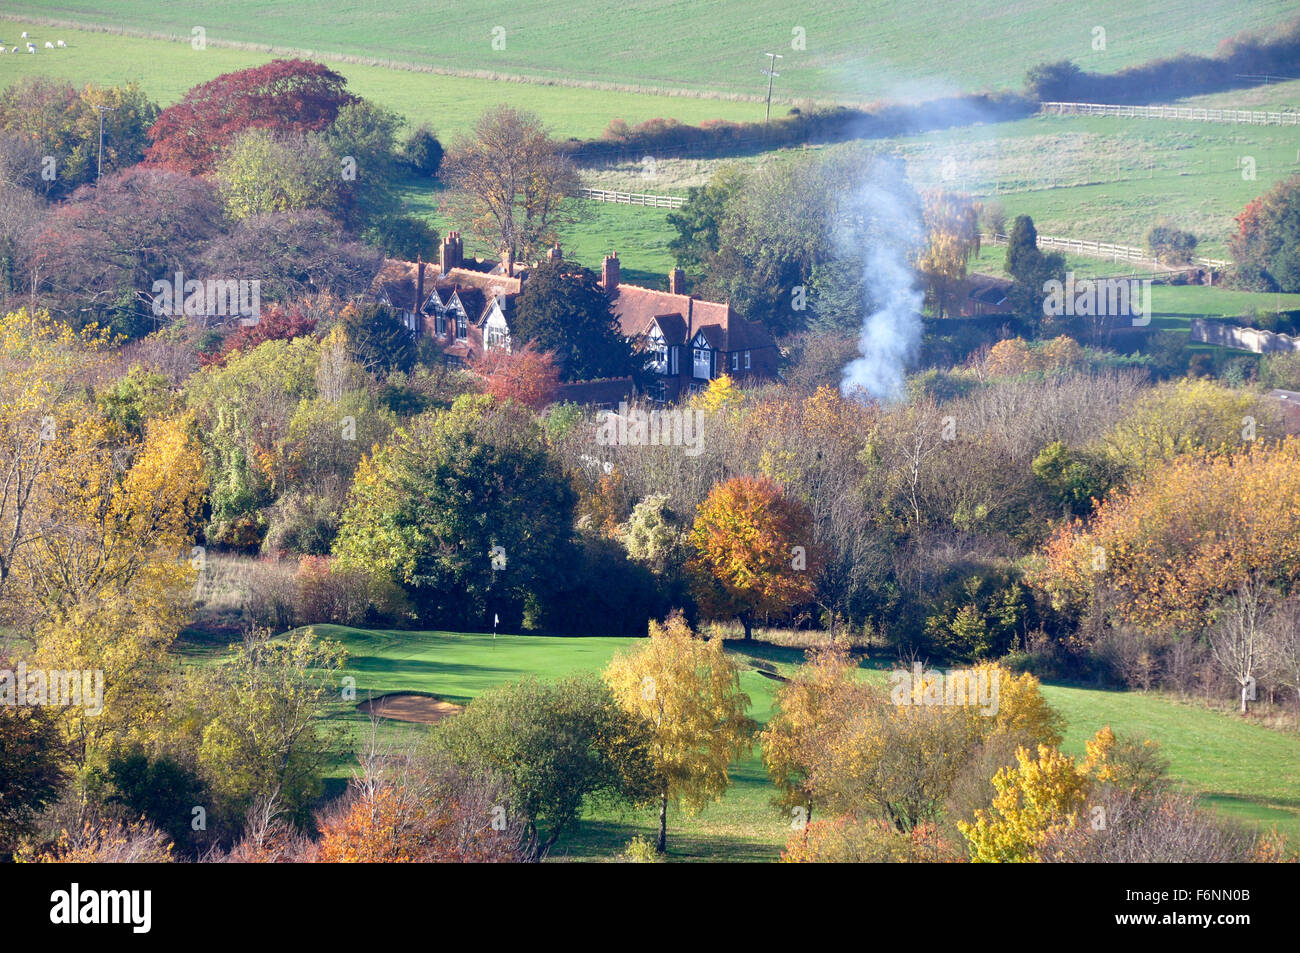 Bucks - Chiltern Hills - on Coombe Hill - view over autumn in the trees - cottages rooftops - drifting smoke from - Stock Image